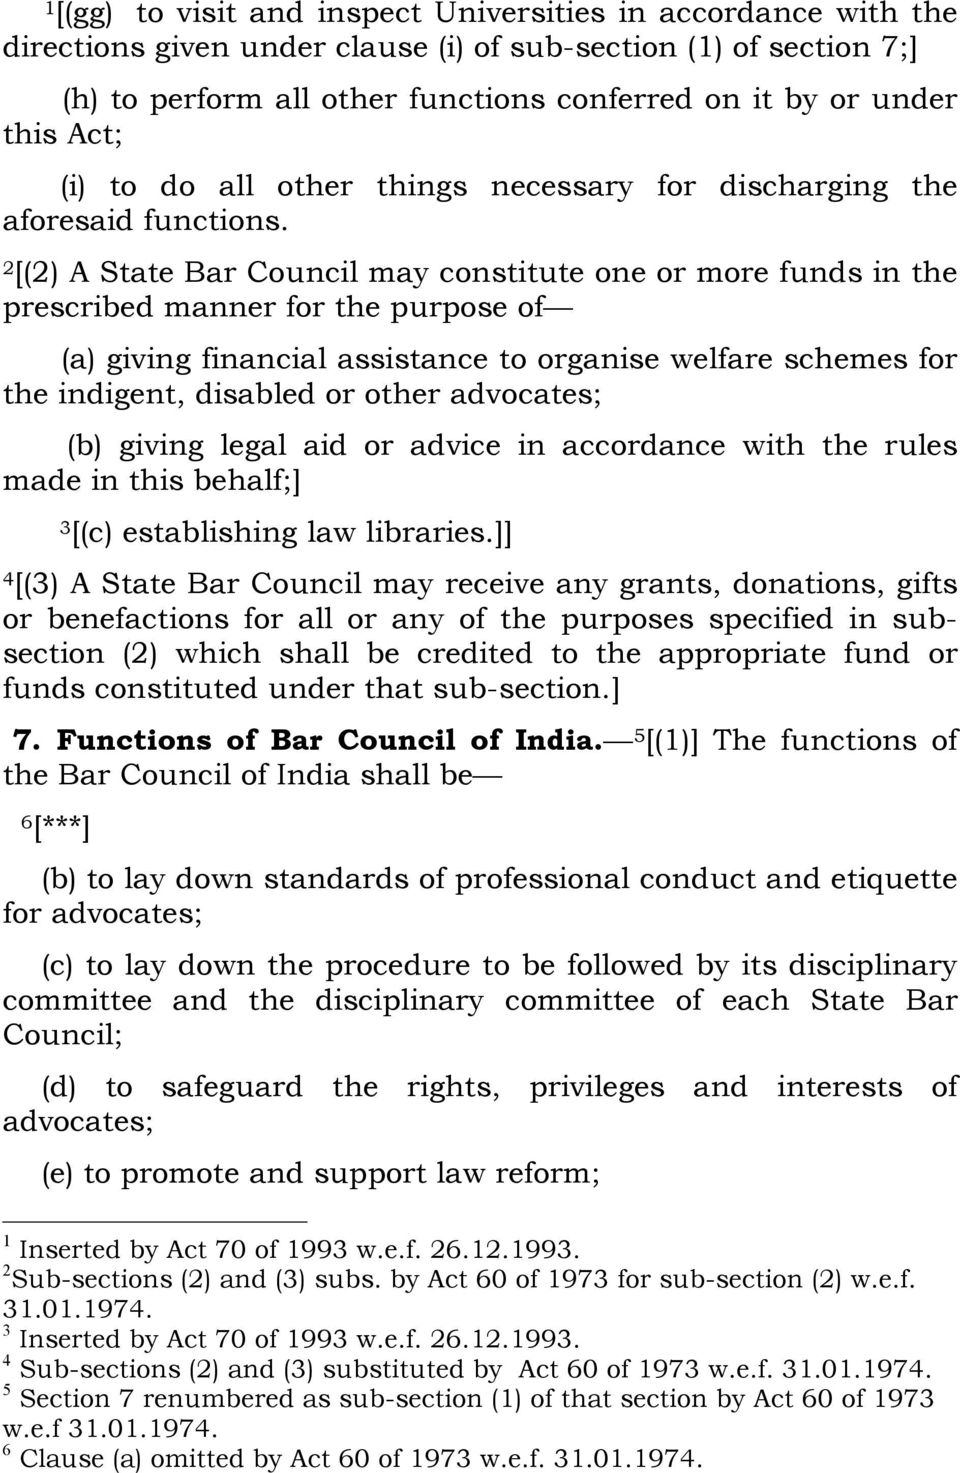 2 [(2) A State Bar Council may constitute one or more funds in the prescribed manner for the purpose of (a) giving financial assistance to organise welfare schemes for the indigent, disabled or other